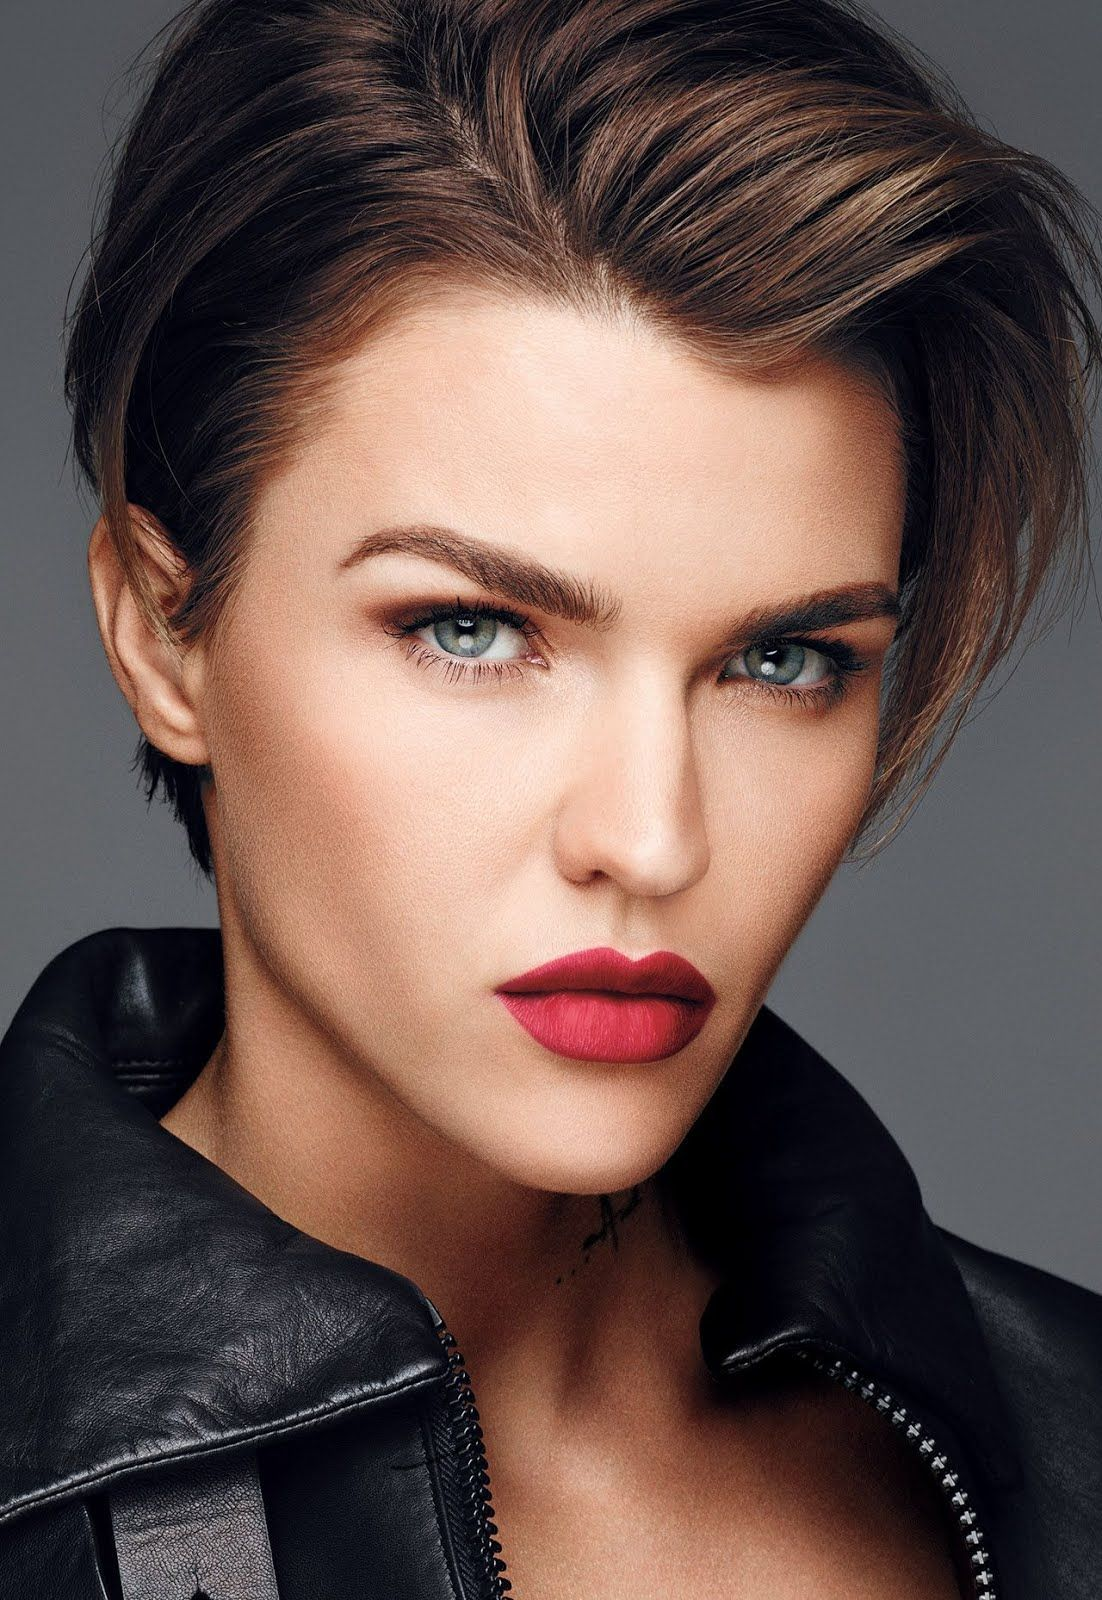 Top 10 Lesbians Celebrities  Hottest Lesbians Actress From Around The World - Top 10 Ranker In 2020  Ruby Rose Hair, Ruby Rose Haircut, Short -5766